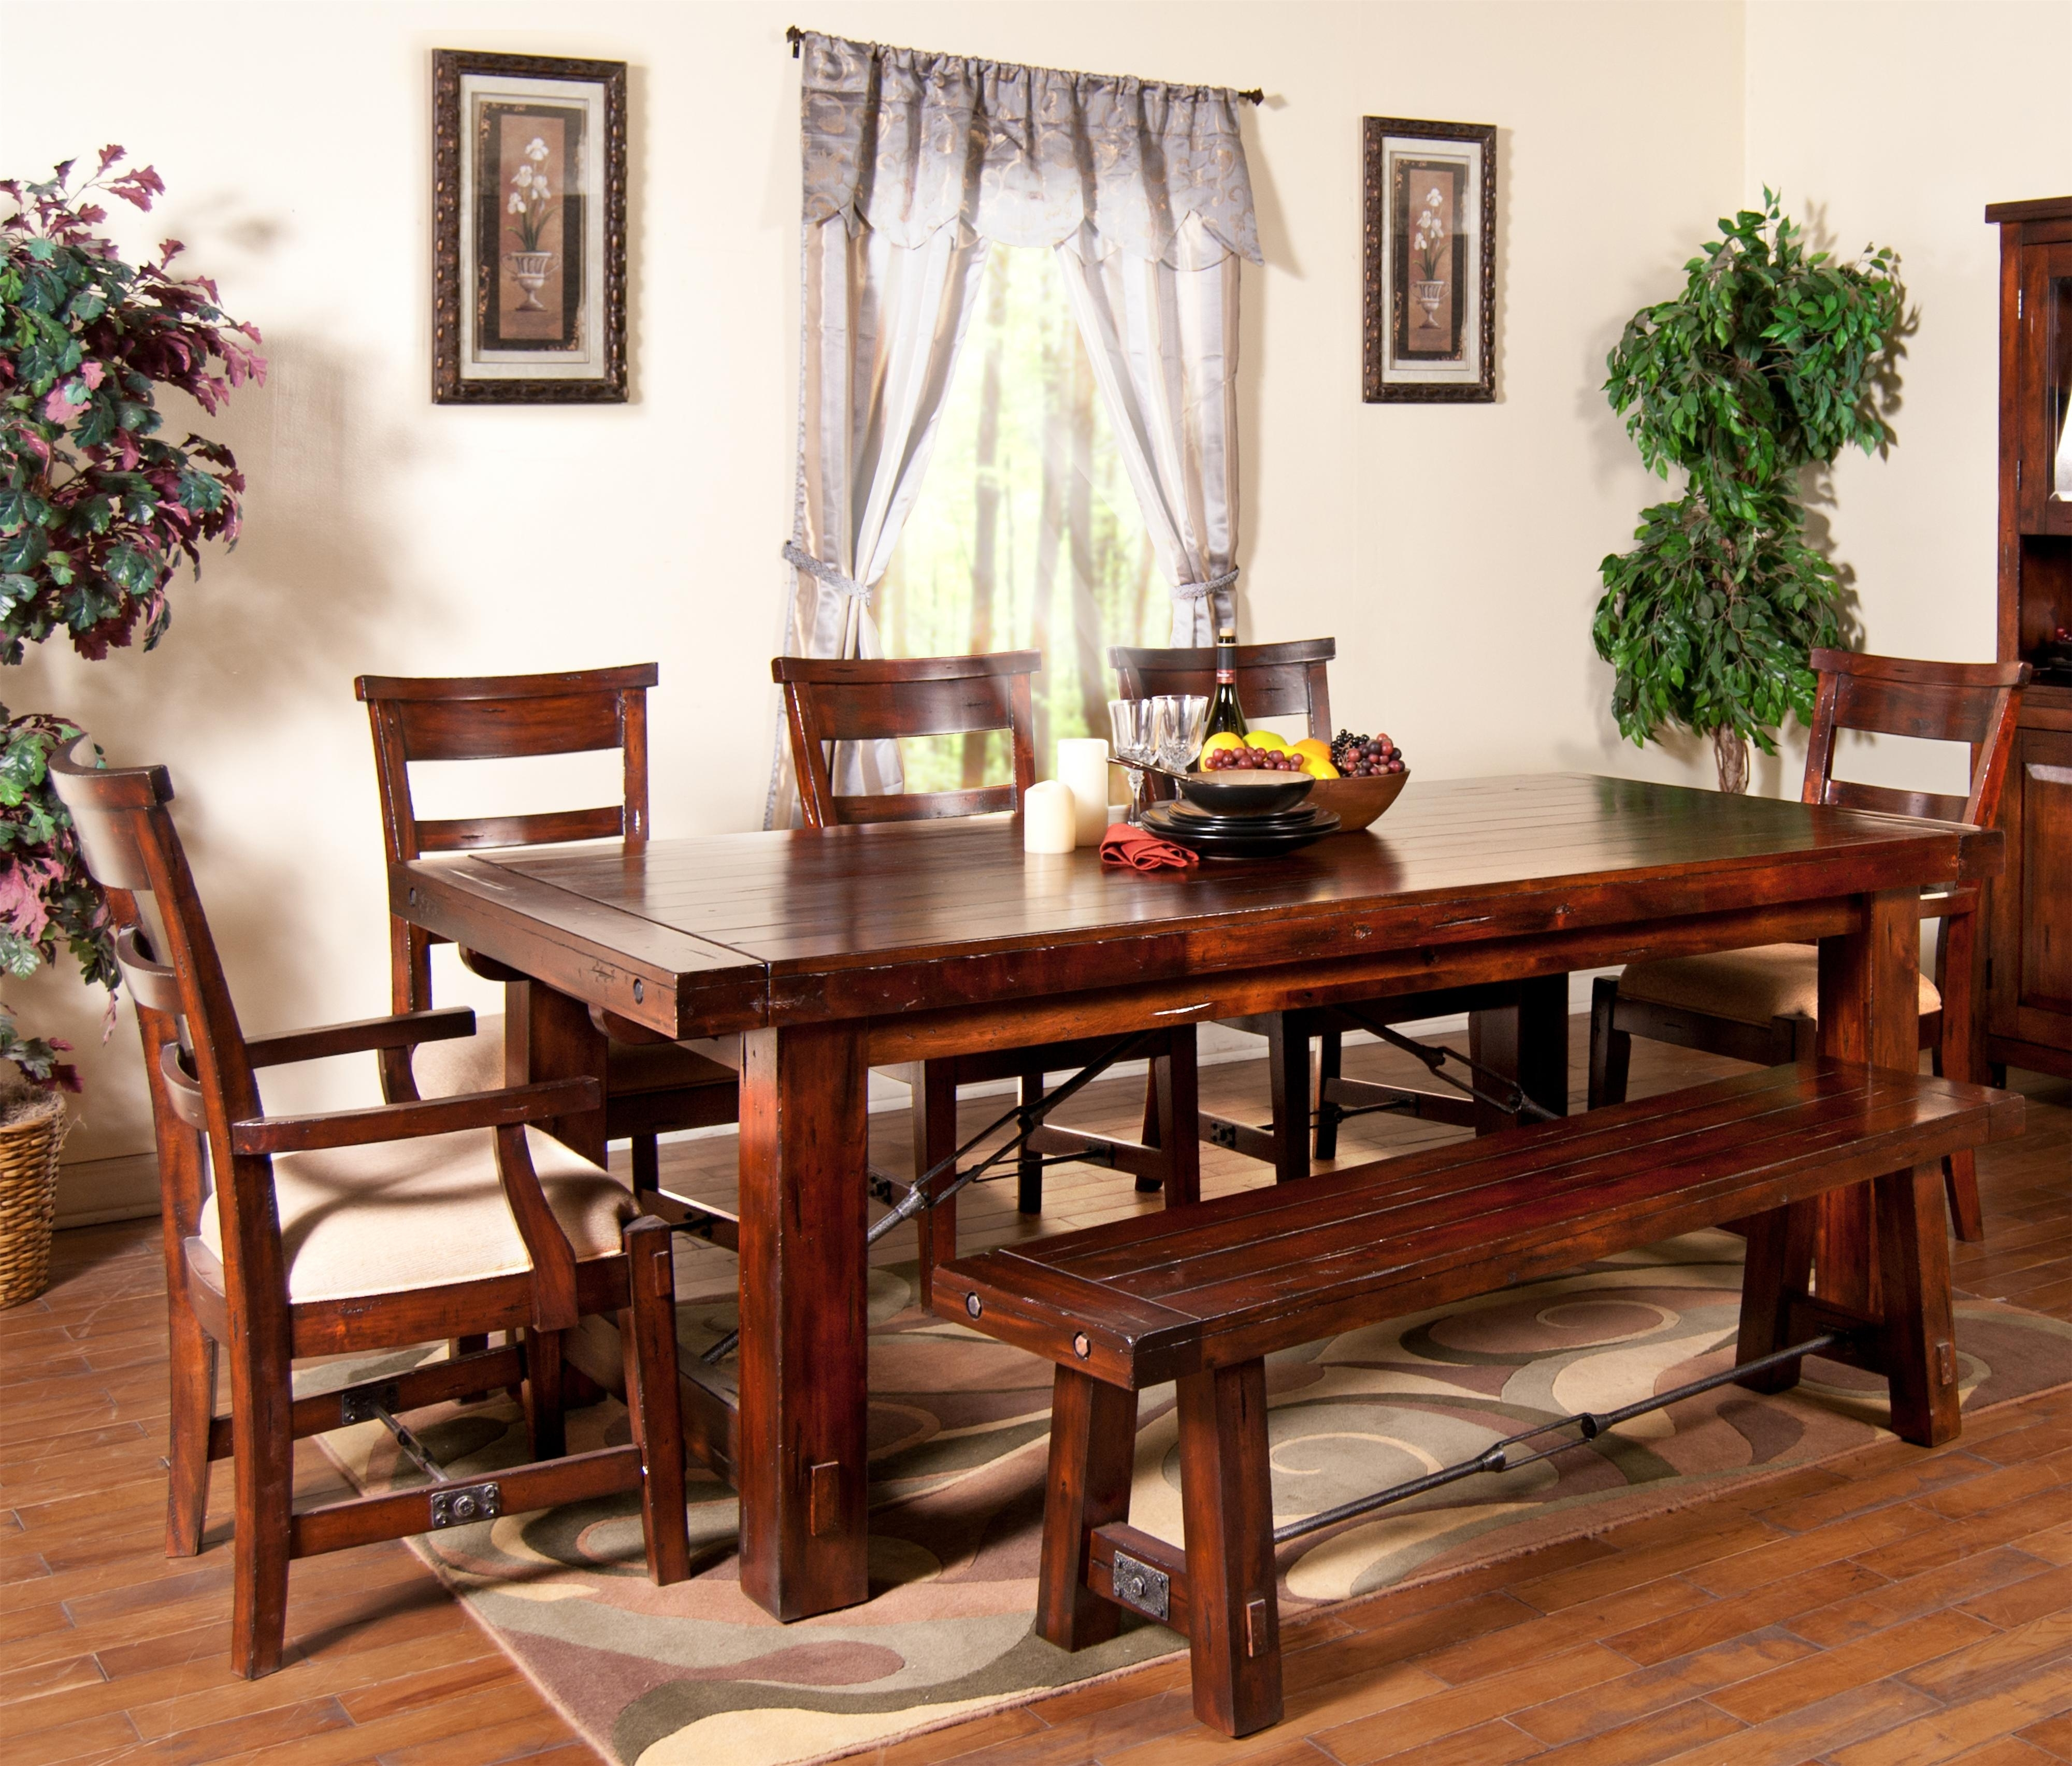 7 Piece Extension Table With Chairs And Bench Setsunny Designs Inside Most Recent Craftsman 7 Piece Rectangle Extension Dining Sets With Side Chairs (View 4 of 20)